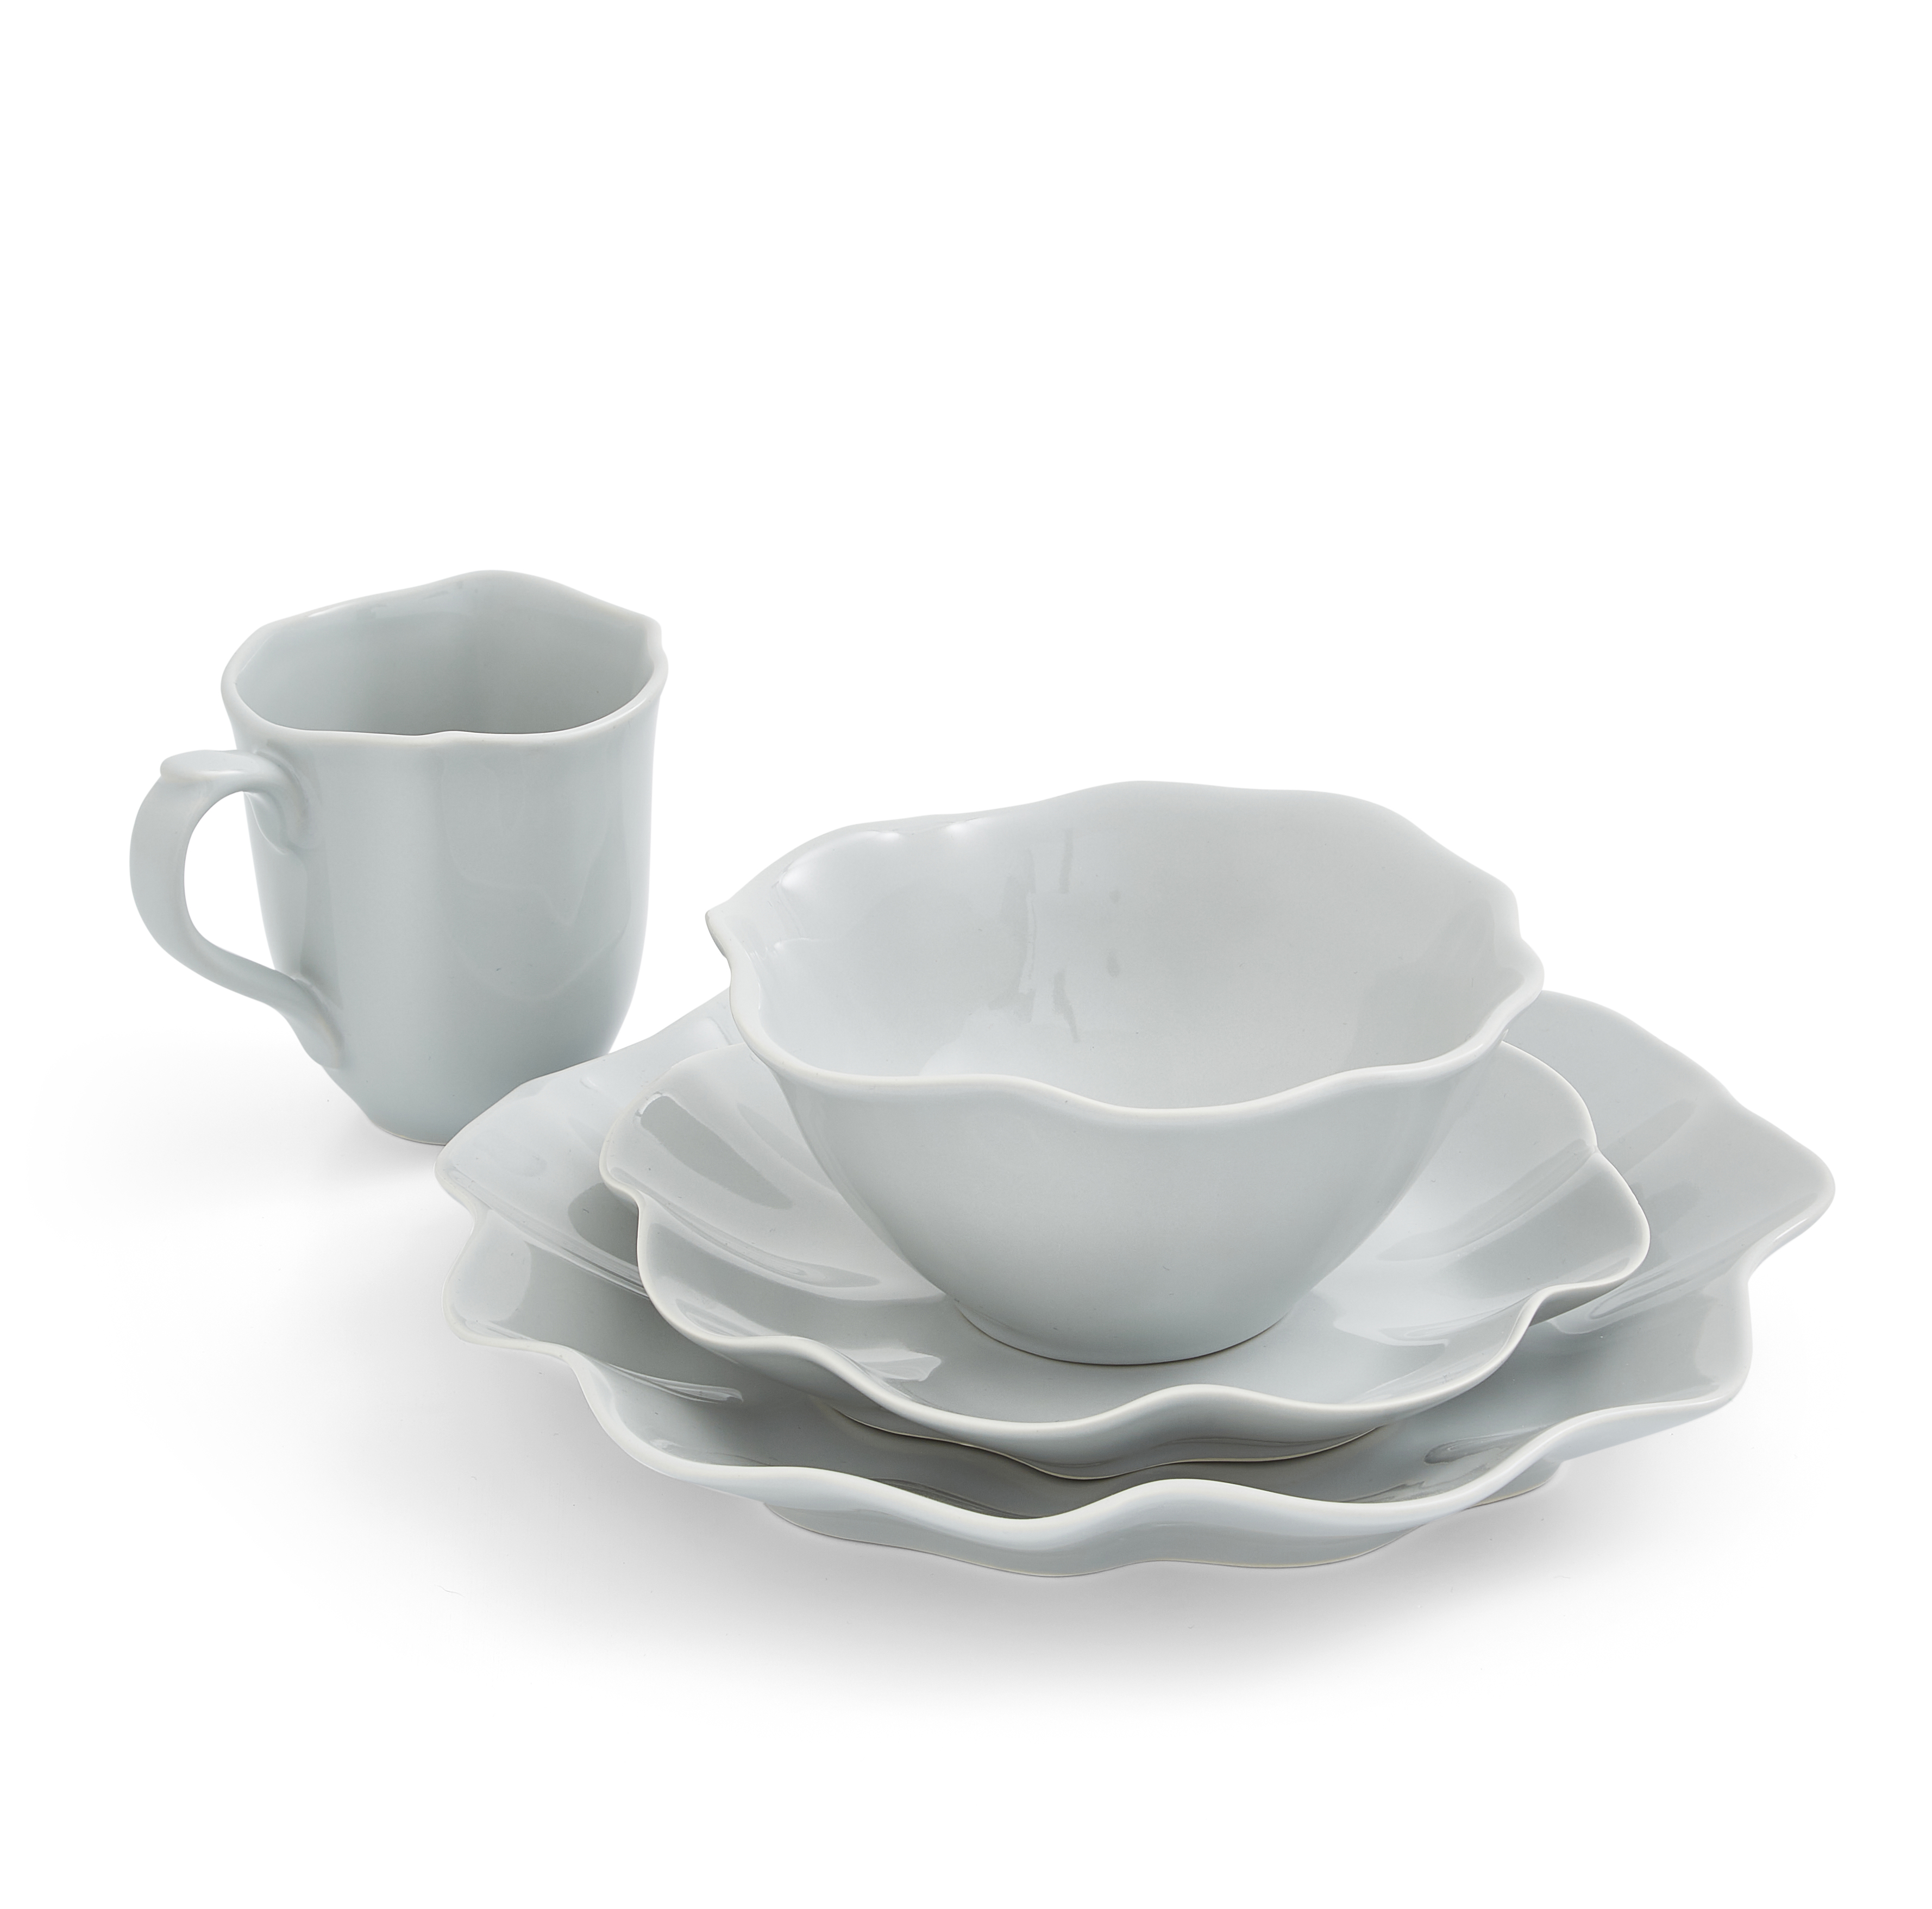 Sophie Conran Floret 4 Piece Place Setting- Dove Grey image number 0